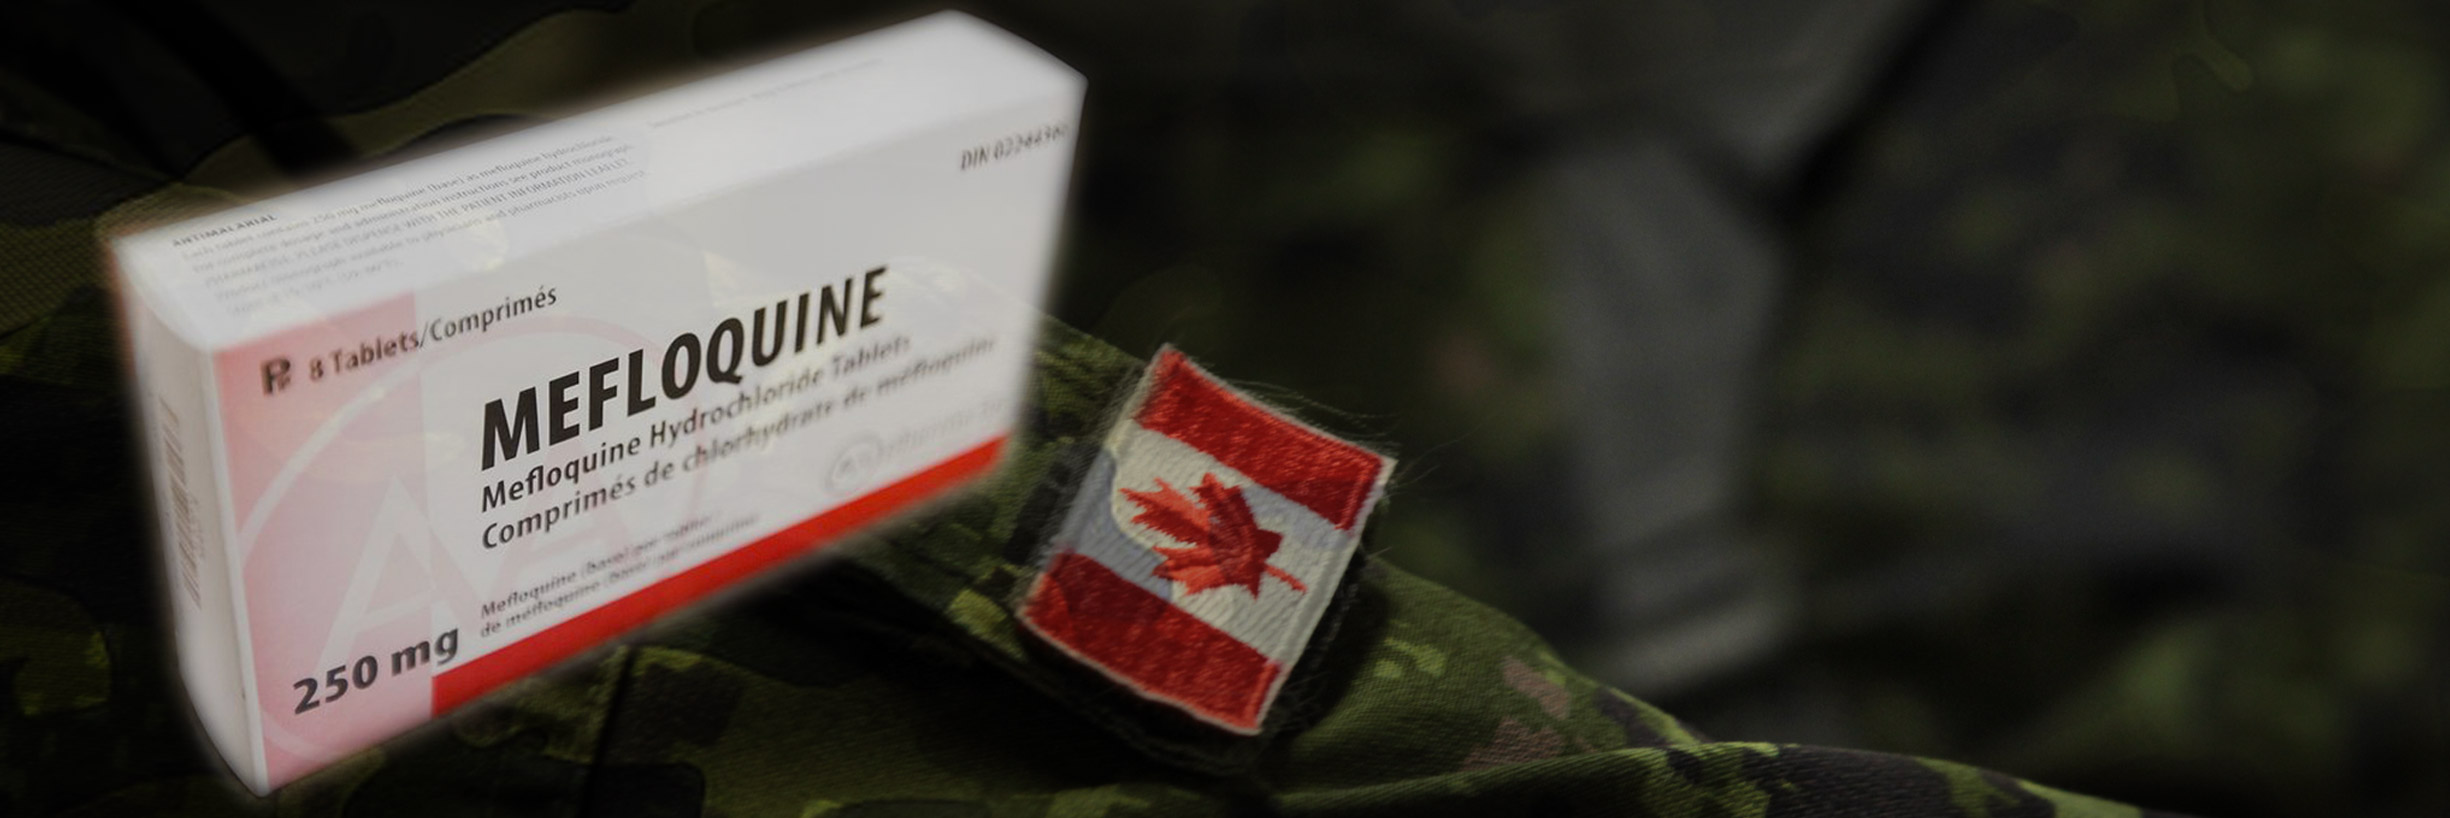 Mefloquine Lawsuit Canada – Join the Mefloquine Lawsuit